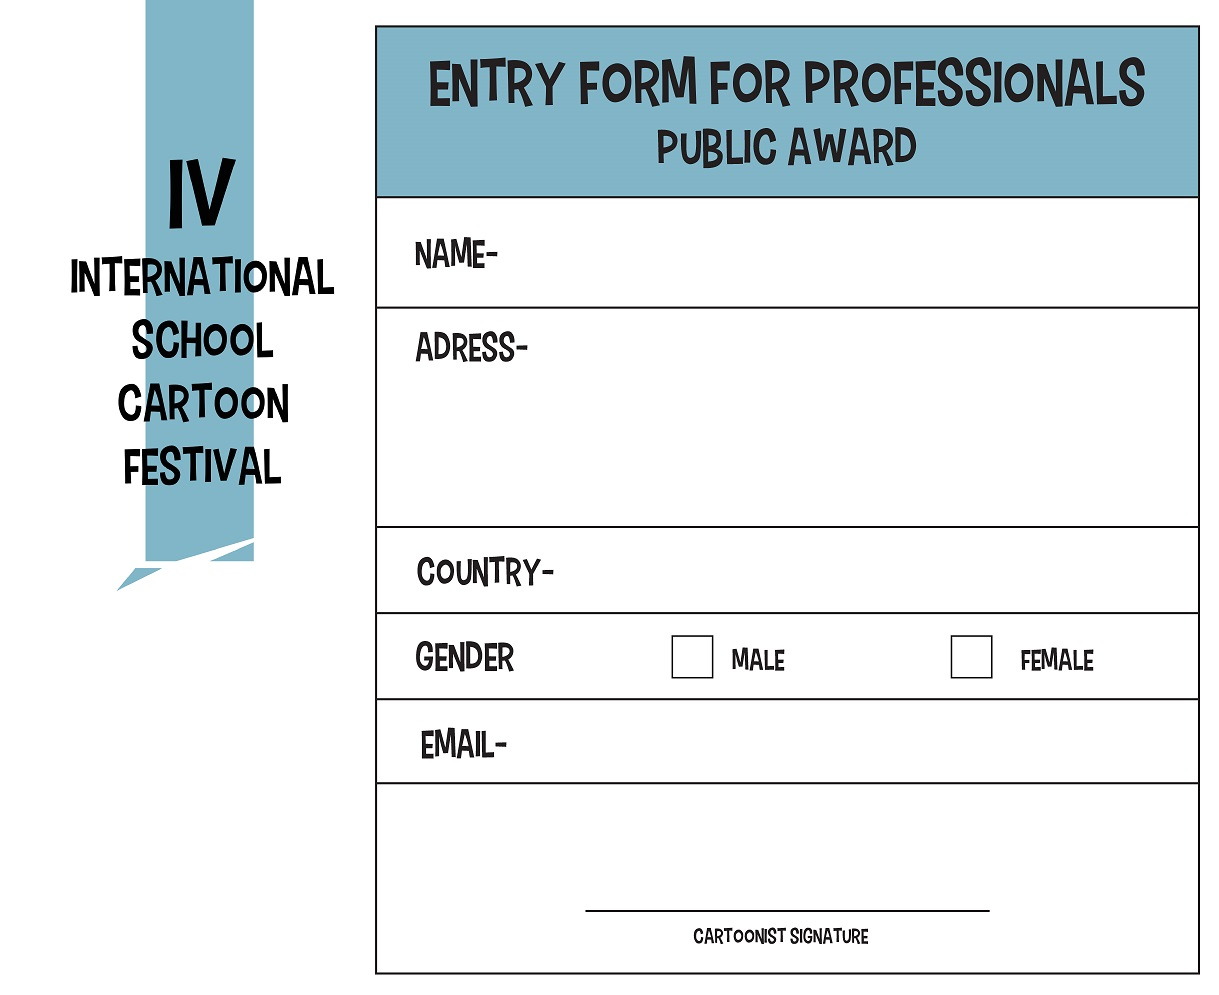 ENTRY FORM PROFESSIONALS